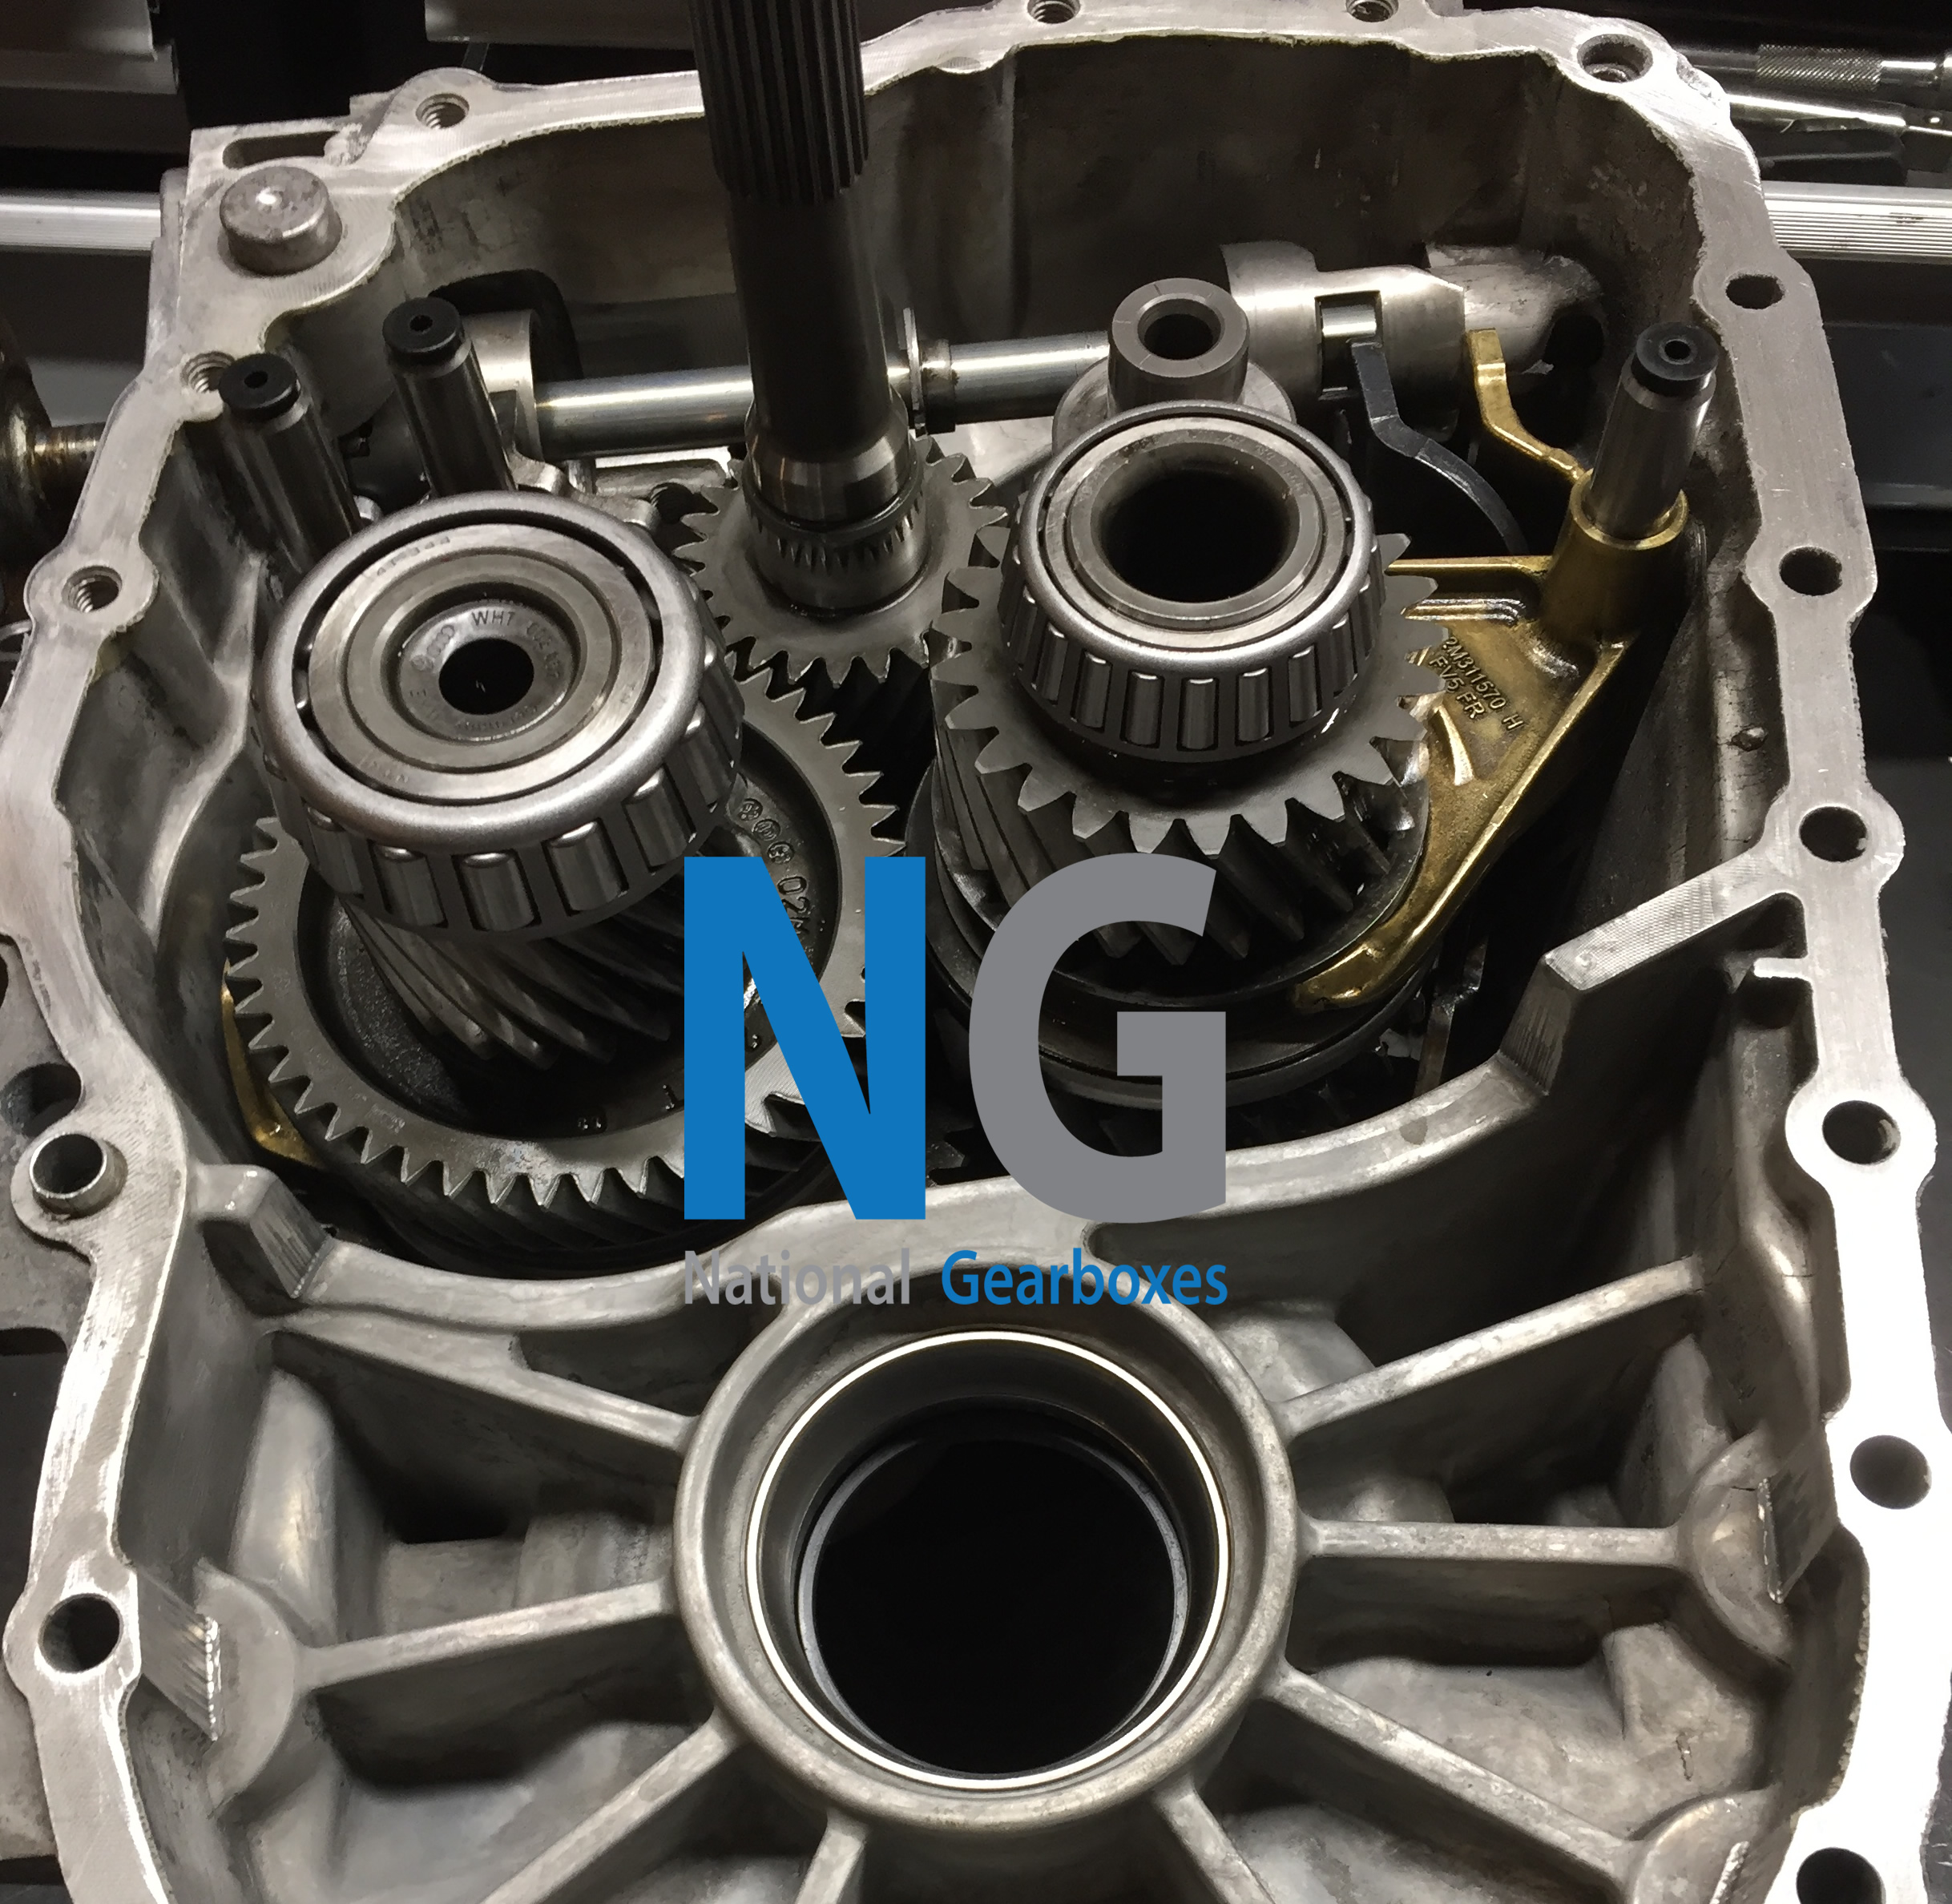 Reconditioned Gearboxes Lowestoft